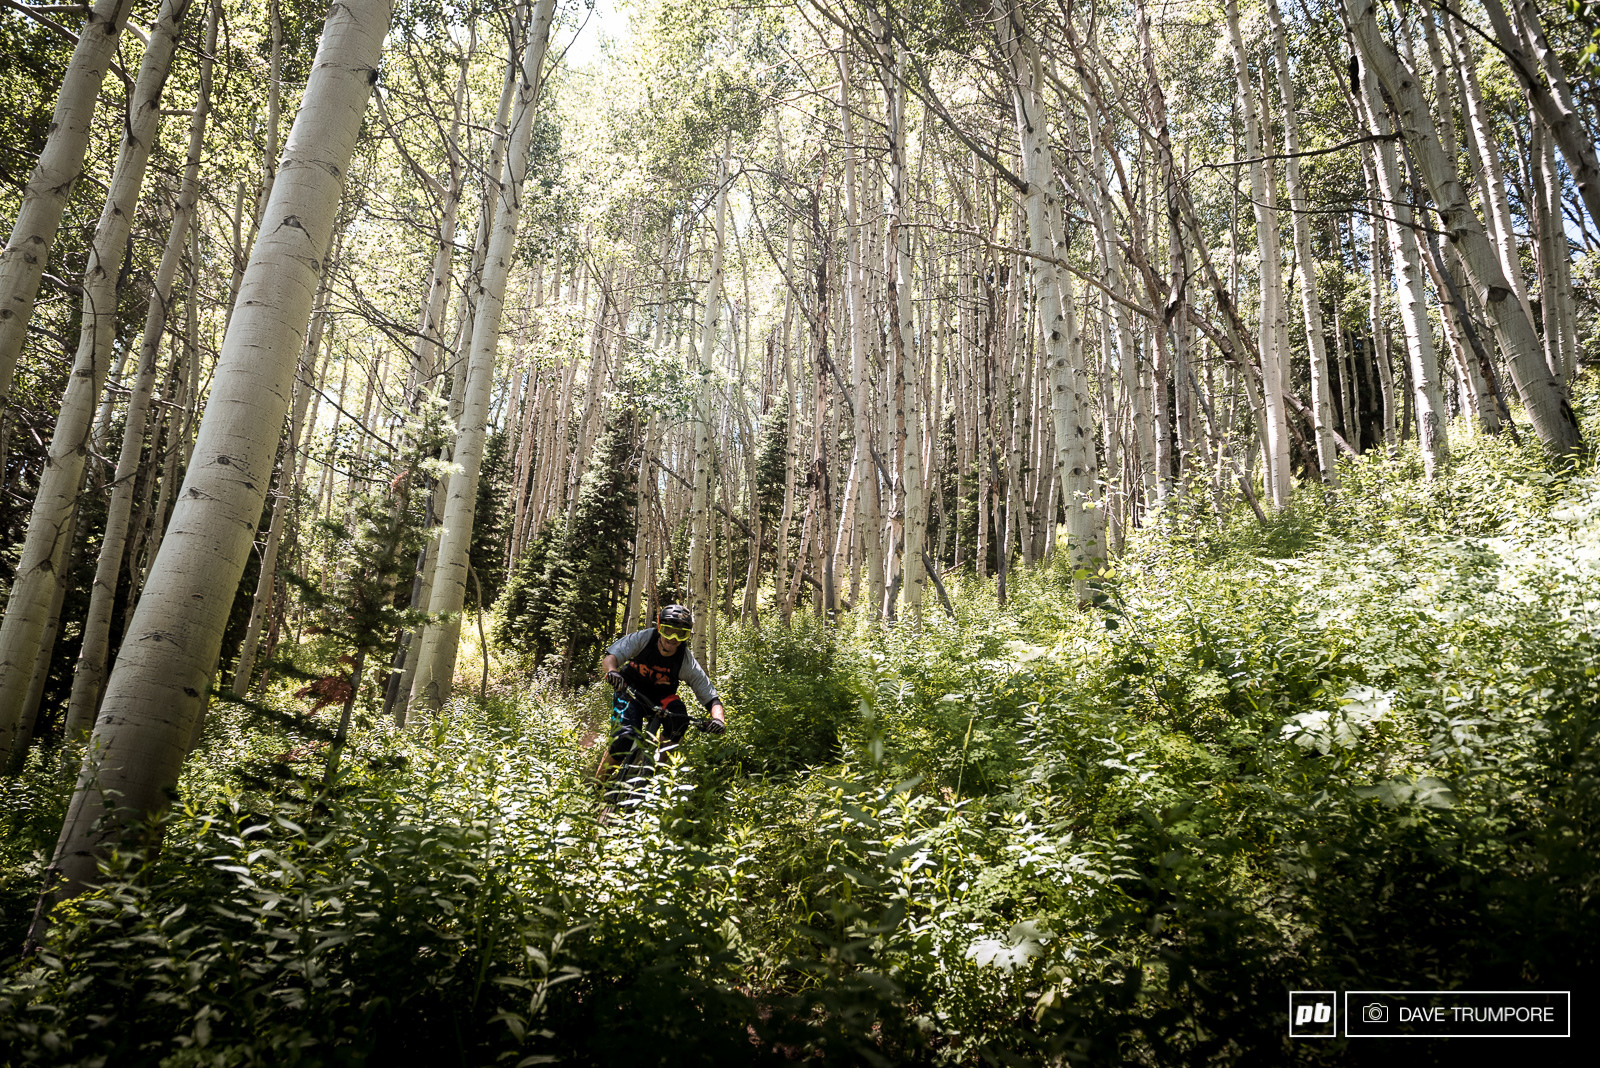 It s pretty hard to beat the feeling of fast flow sigletrack through a grove of aspen trees. Luckily there are plenty section like this on just about every stage.